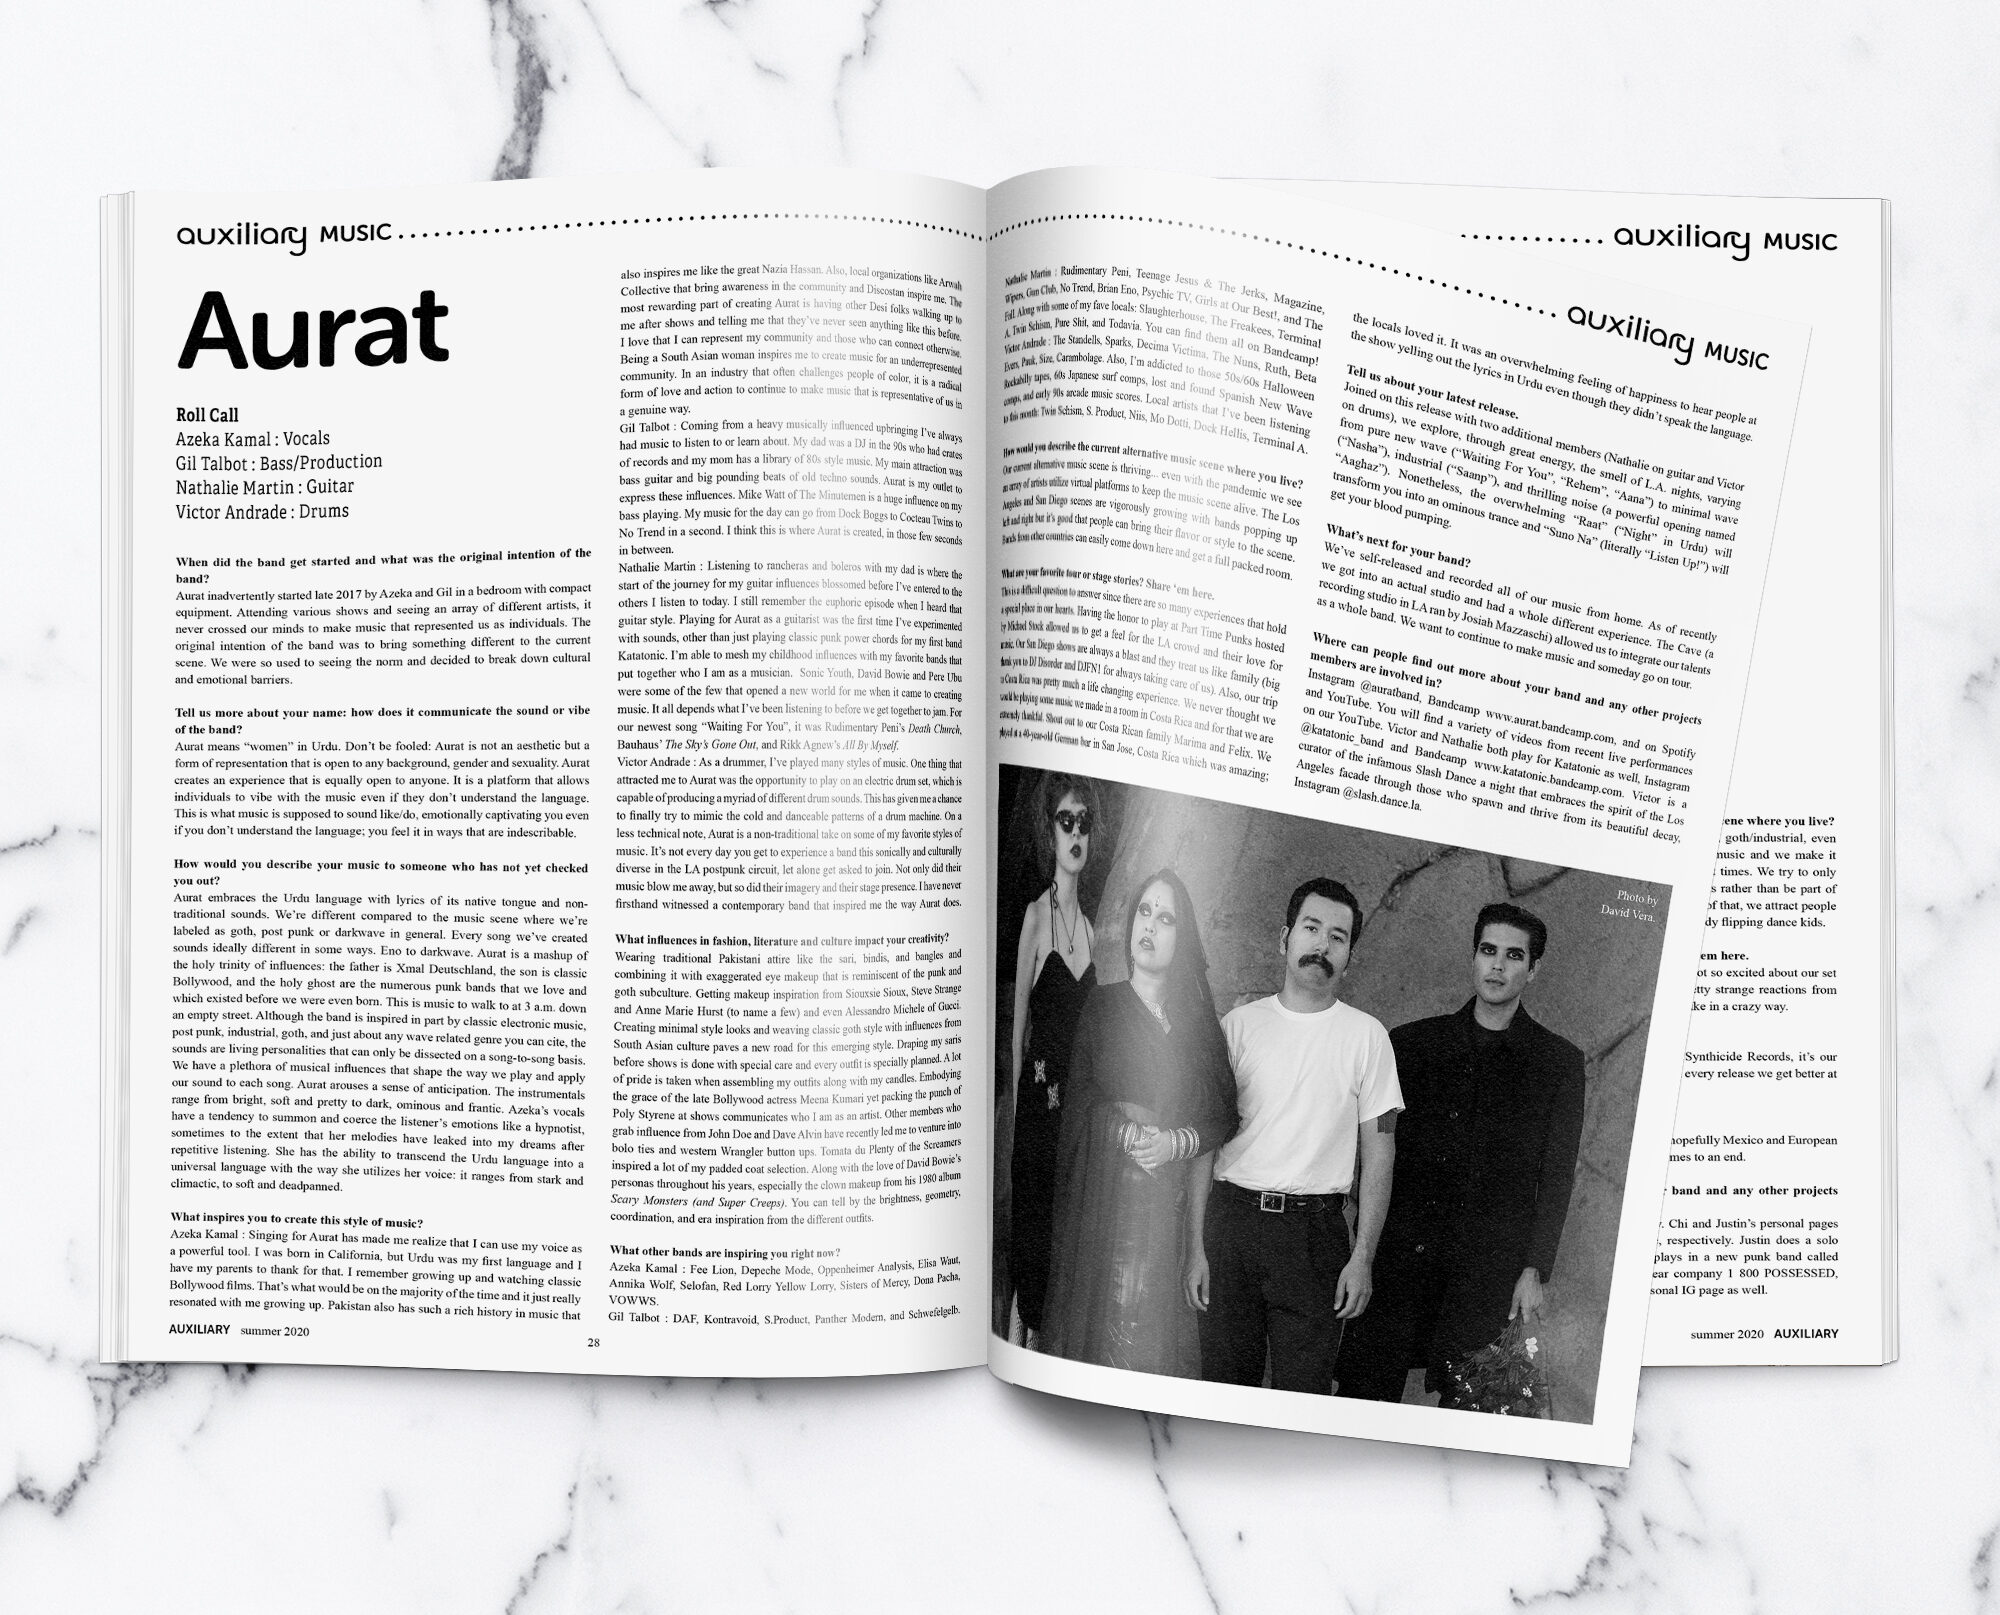 Aurat interview in Auxiliary Magazine